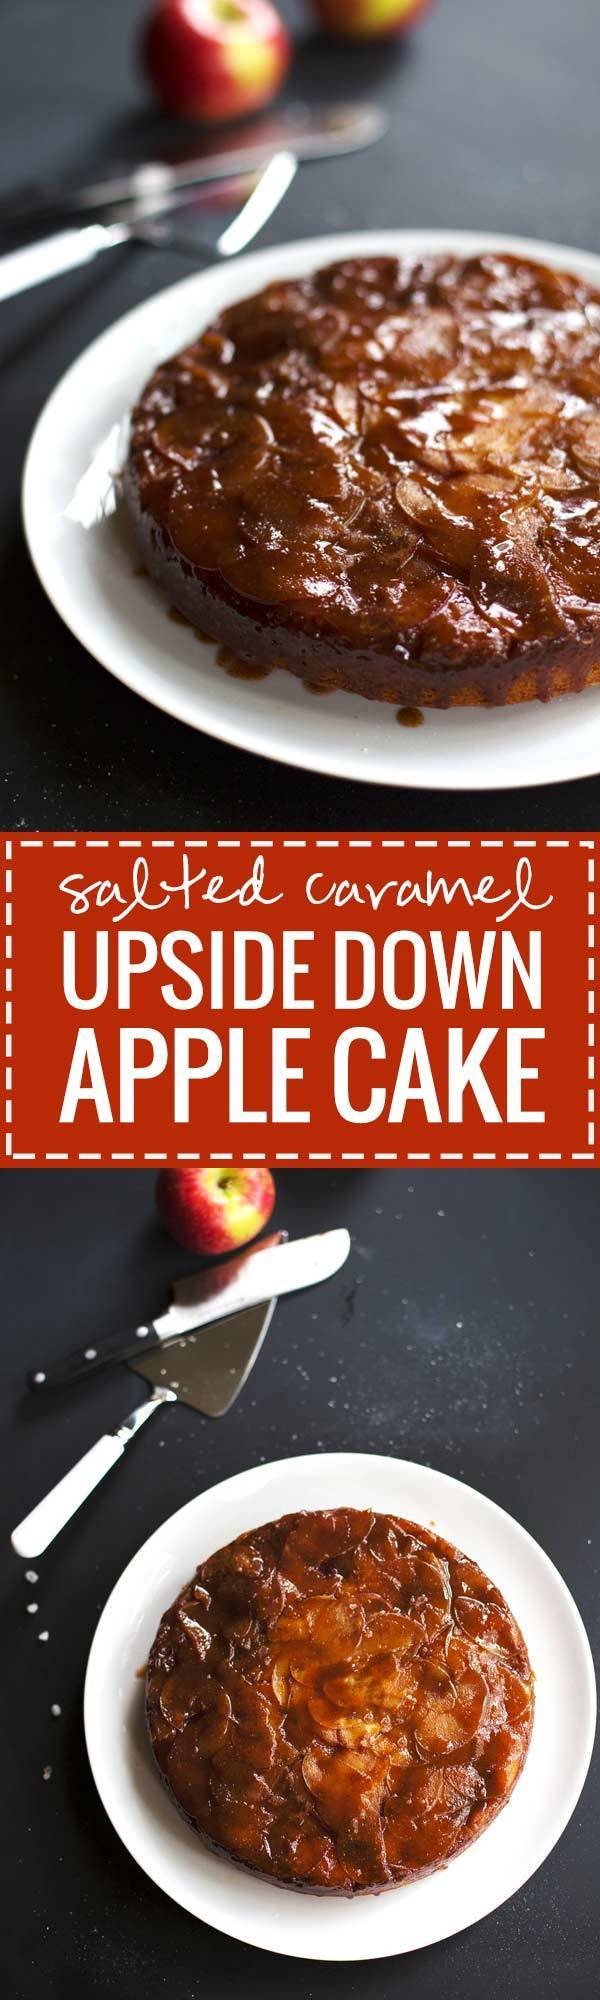 Salted Caramel Upside Down Apple Cake | pinchofyum.com